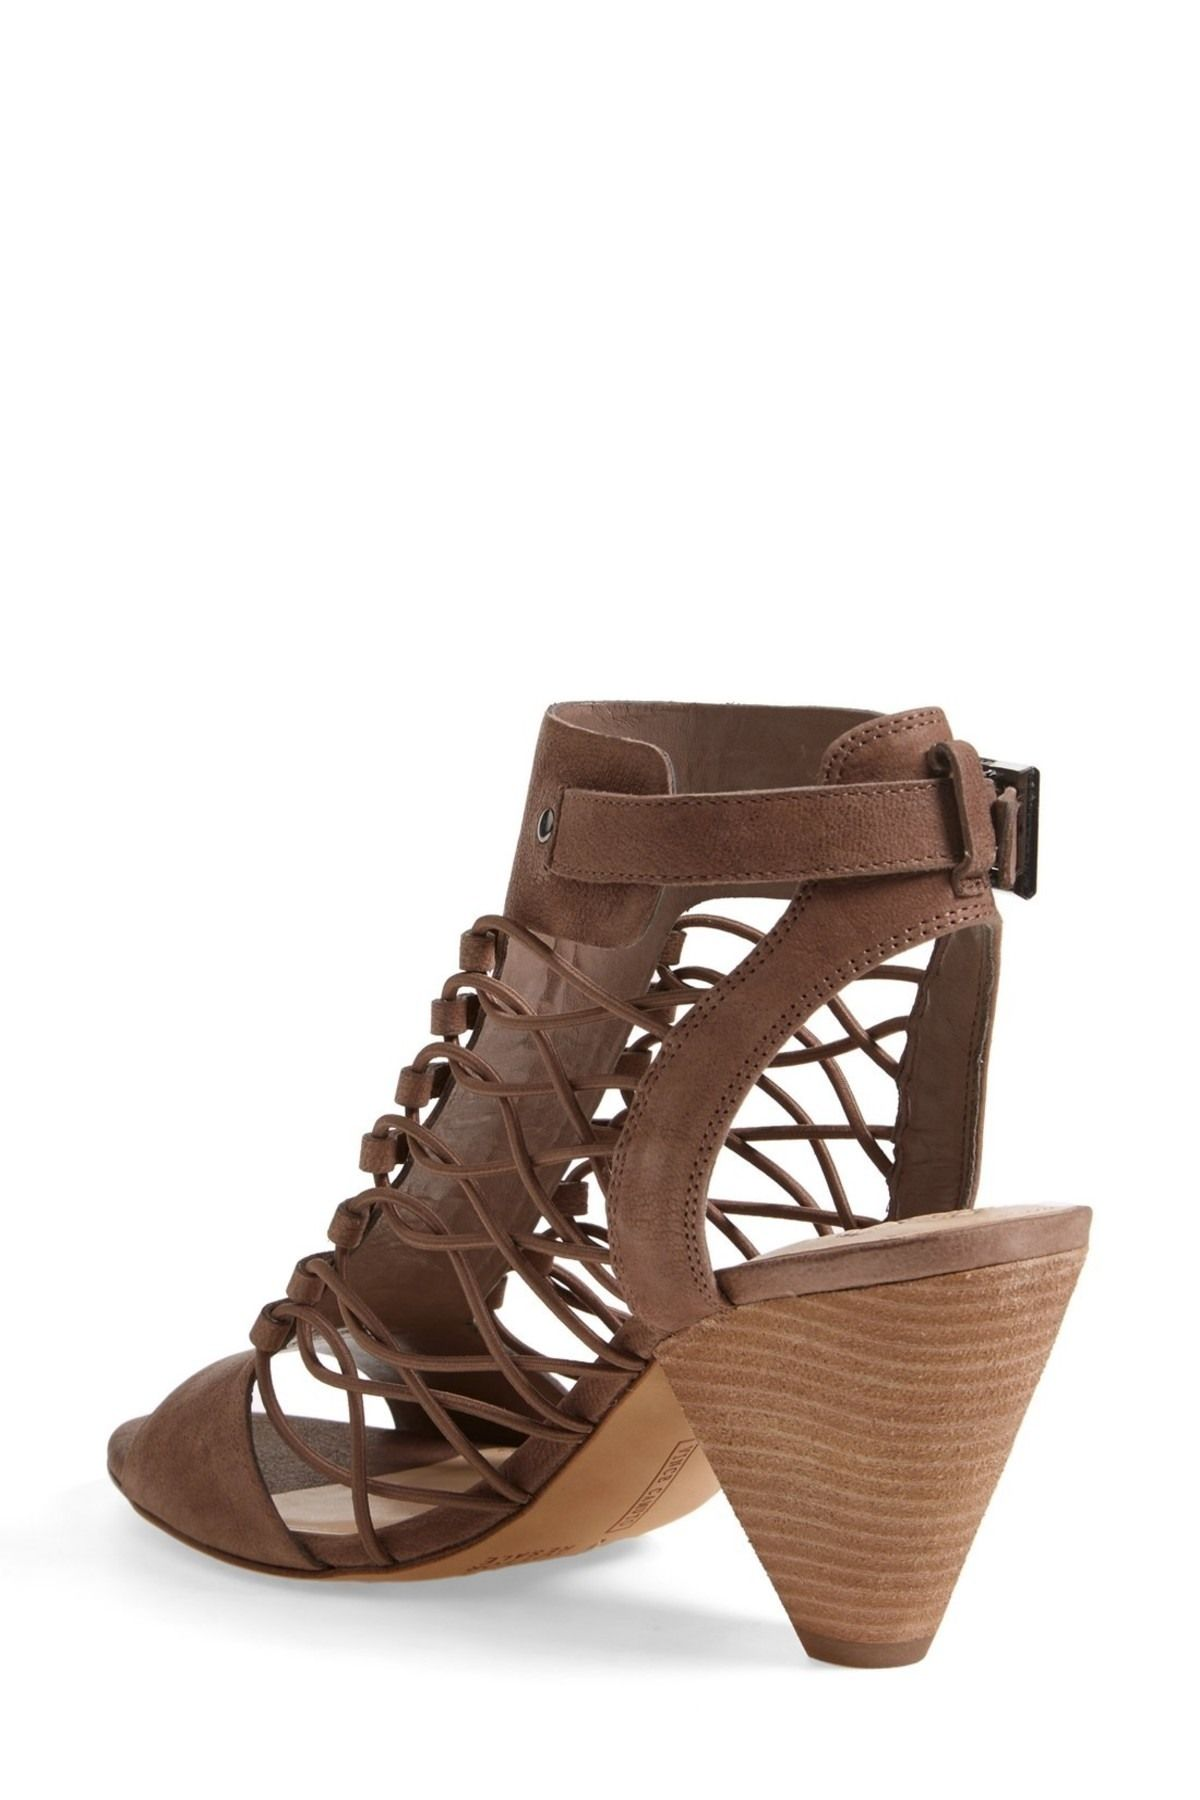 Vince Camuto - Evel Leather Sandal - Wide Width Available is now 0-49% 2c44528c6